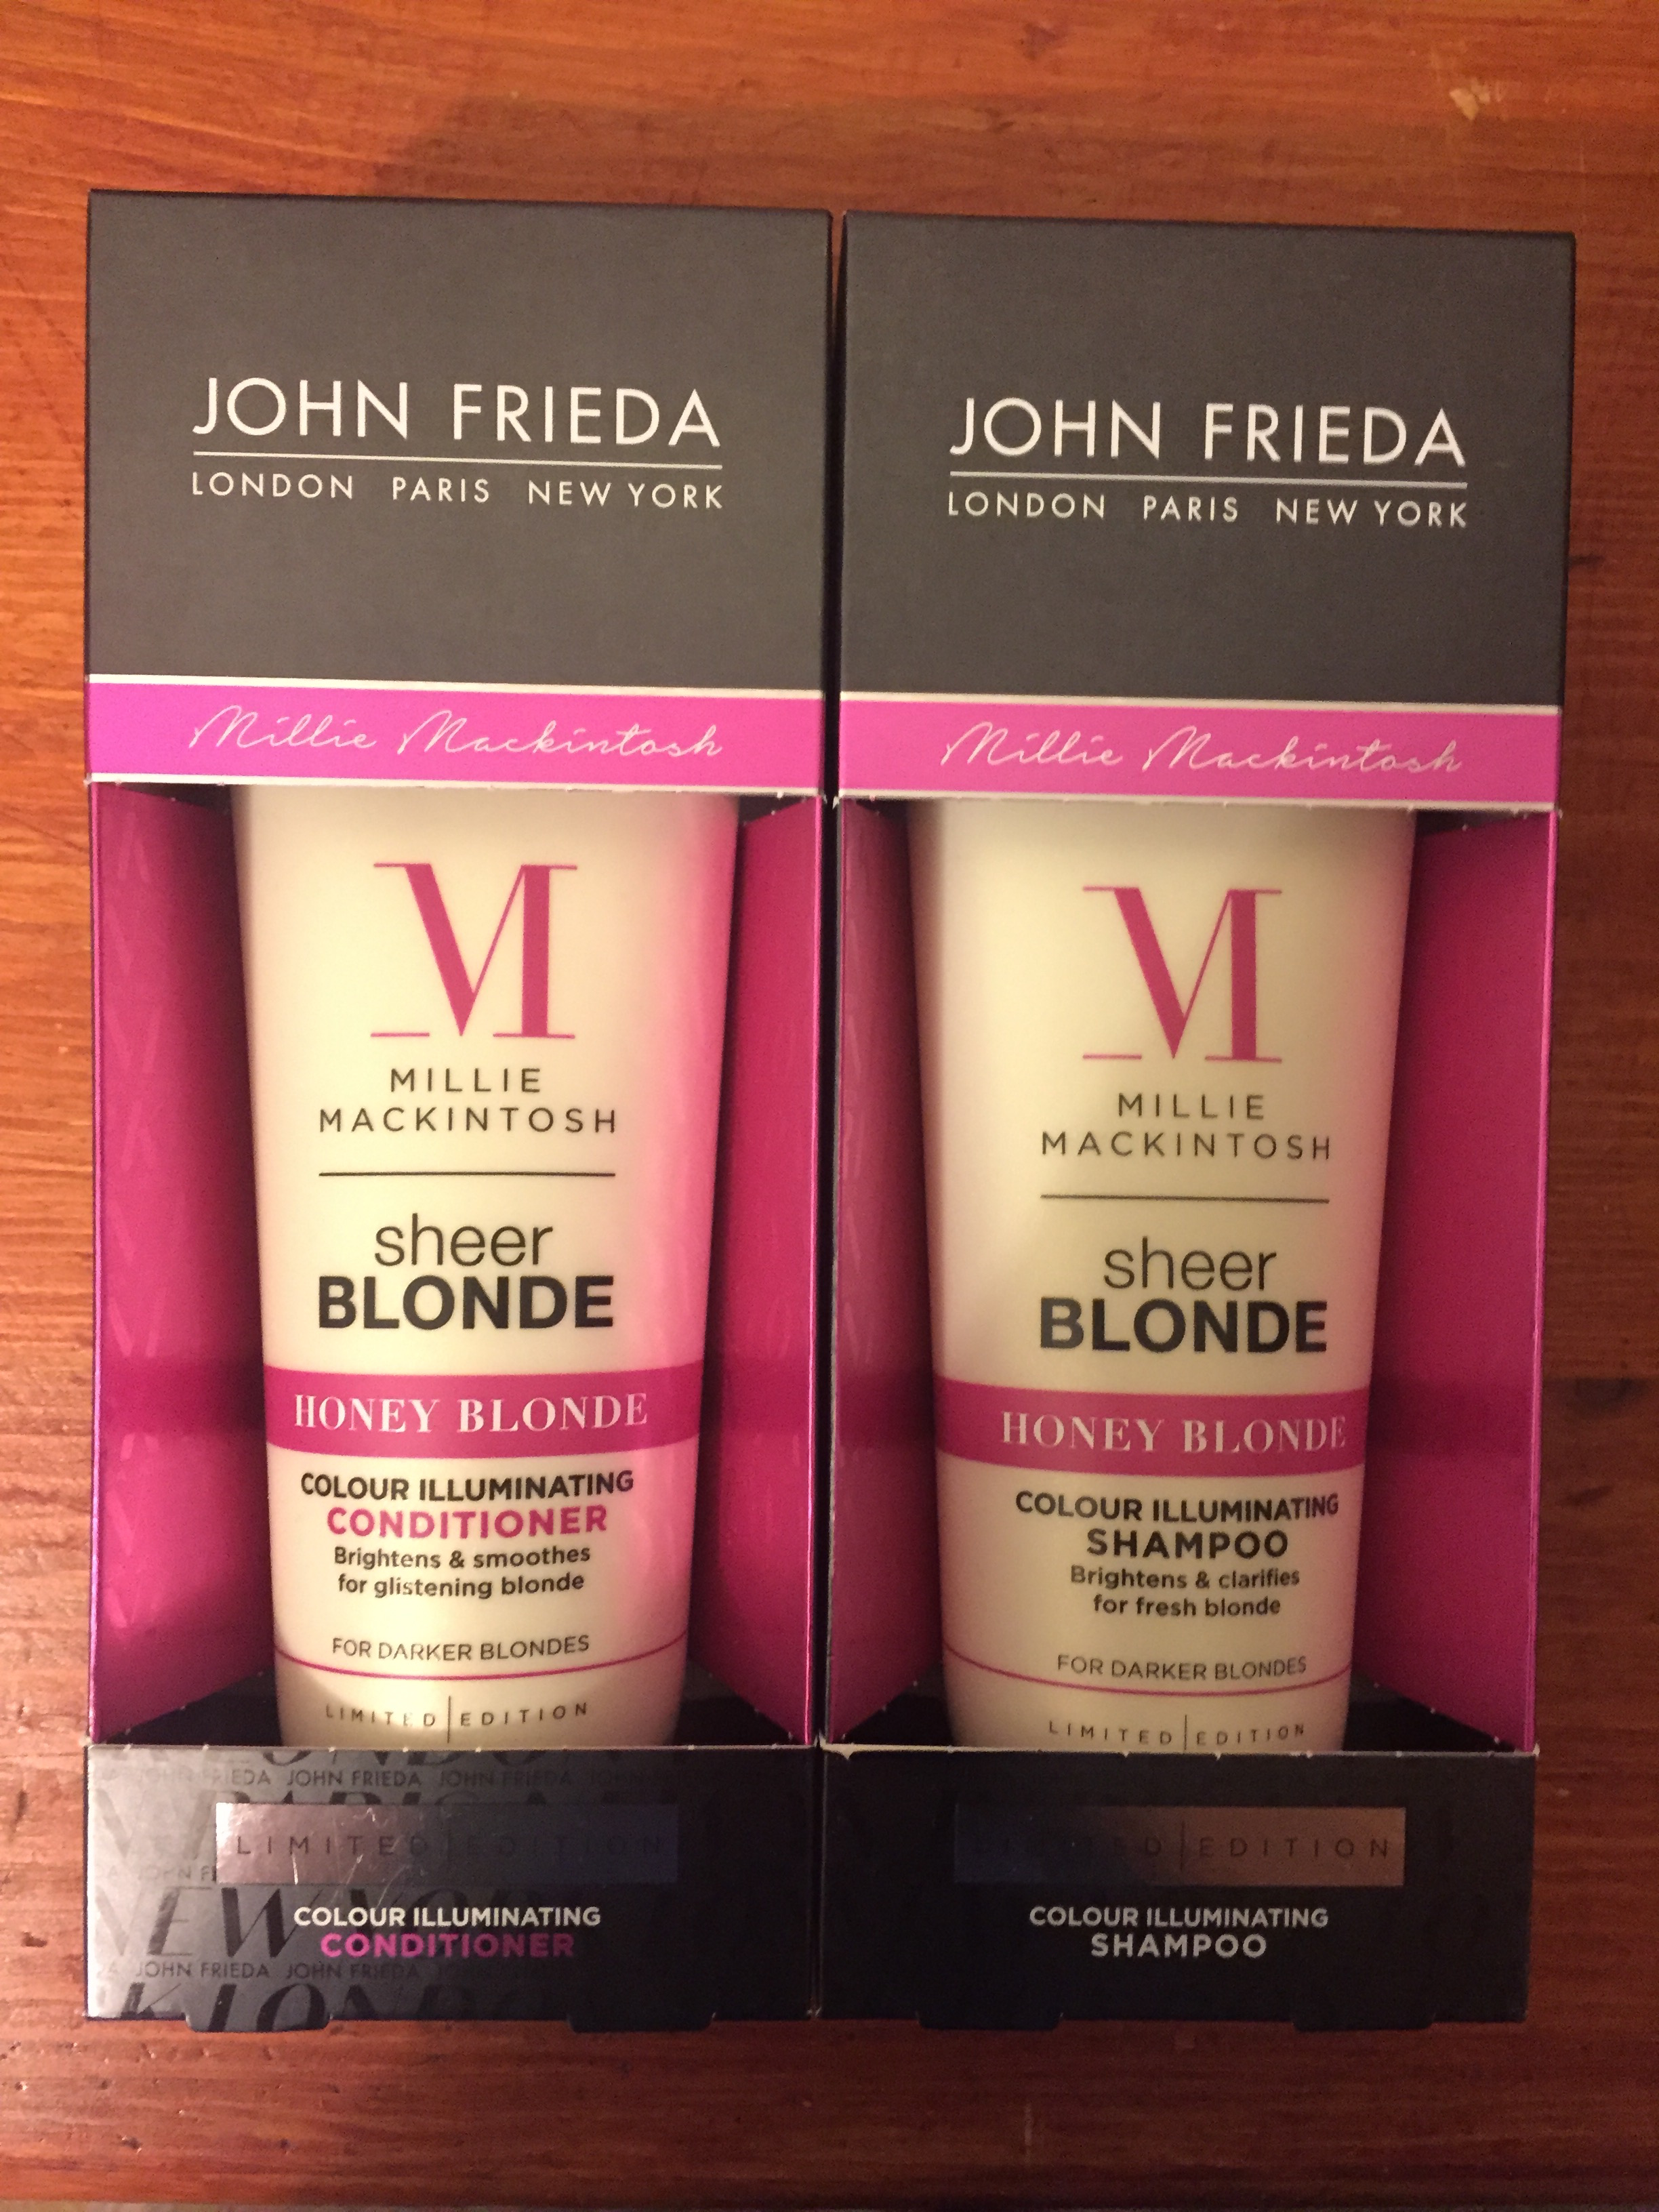 Aldi Shampoo Range John Frieda Sheer Blonde Shampoo And Condition 1 25 All In